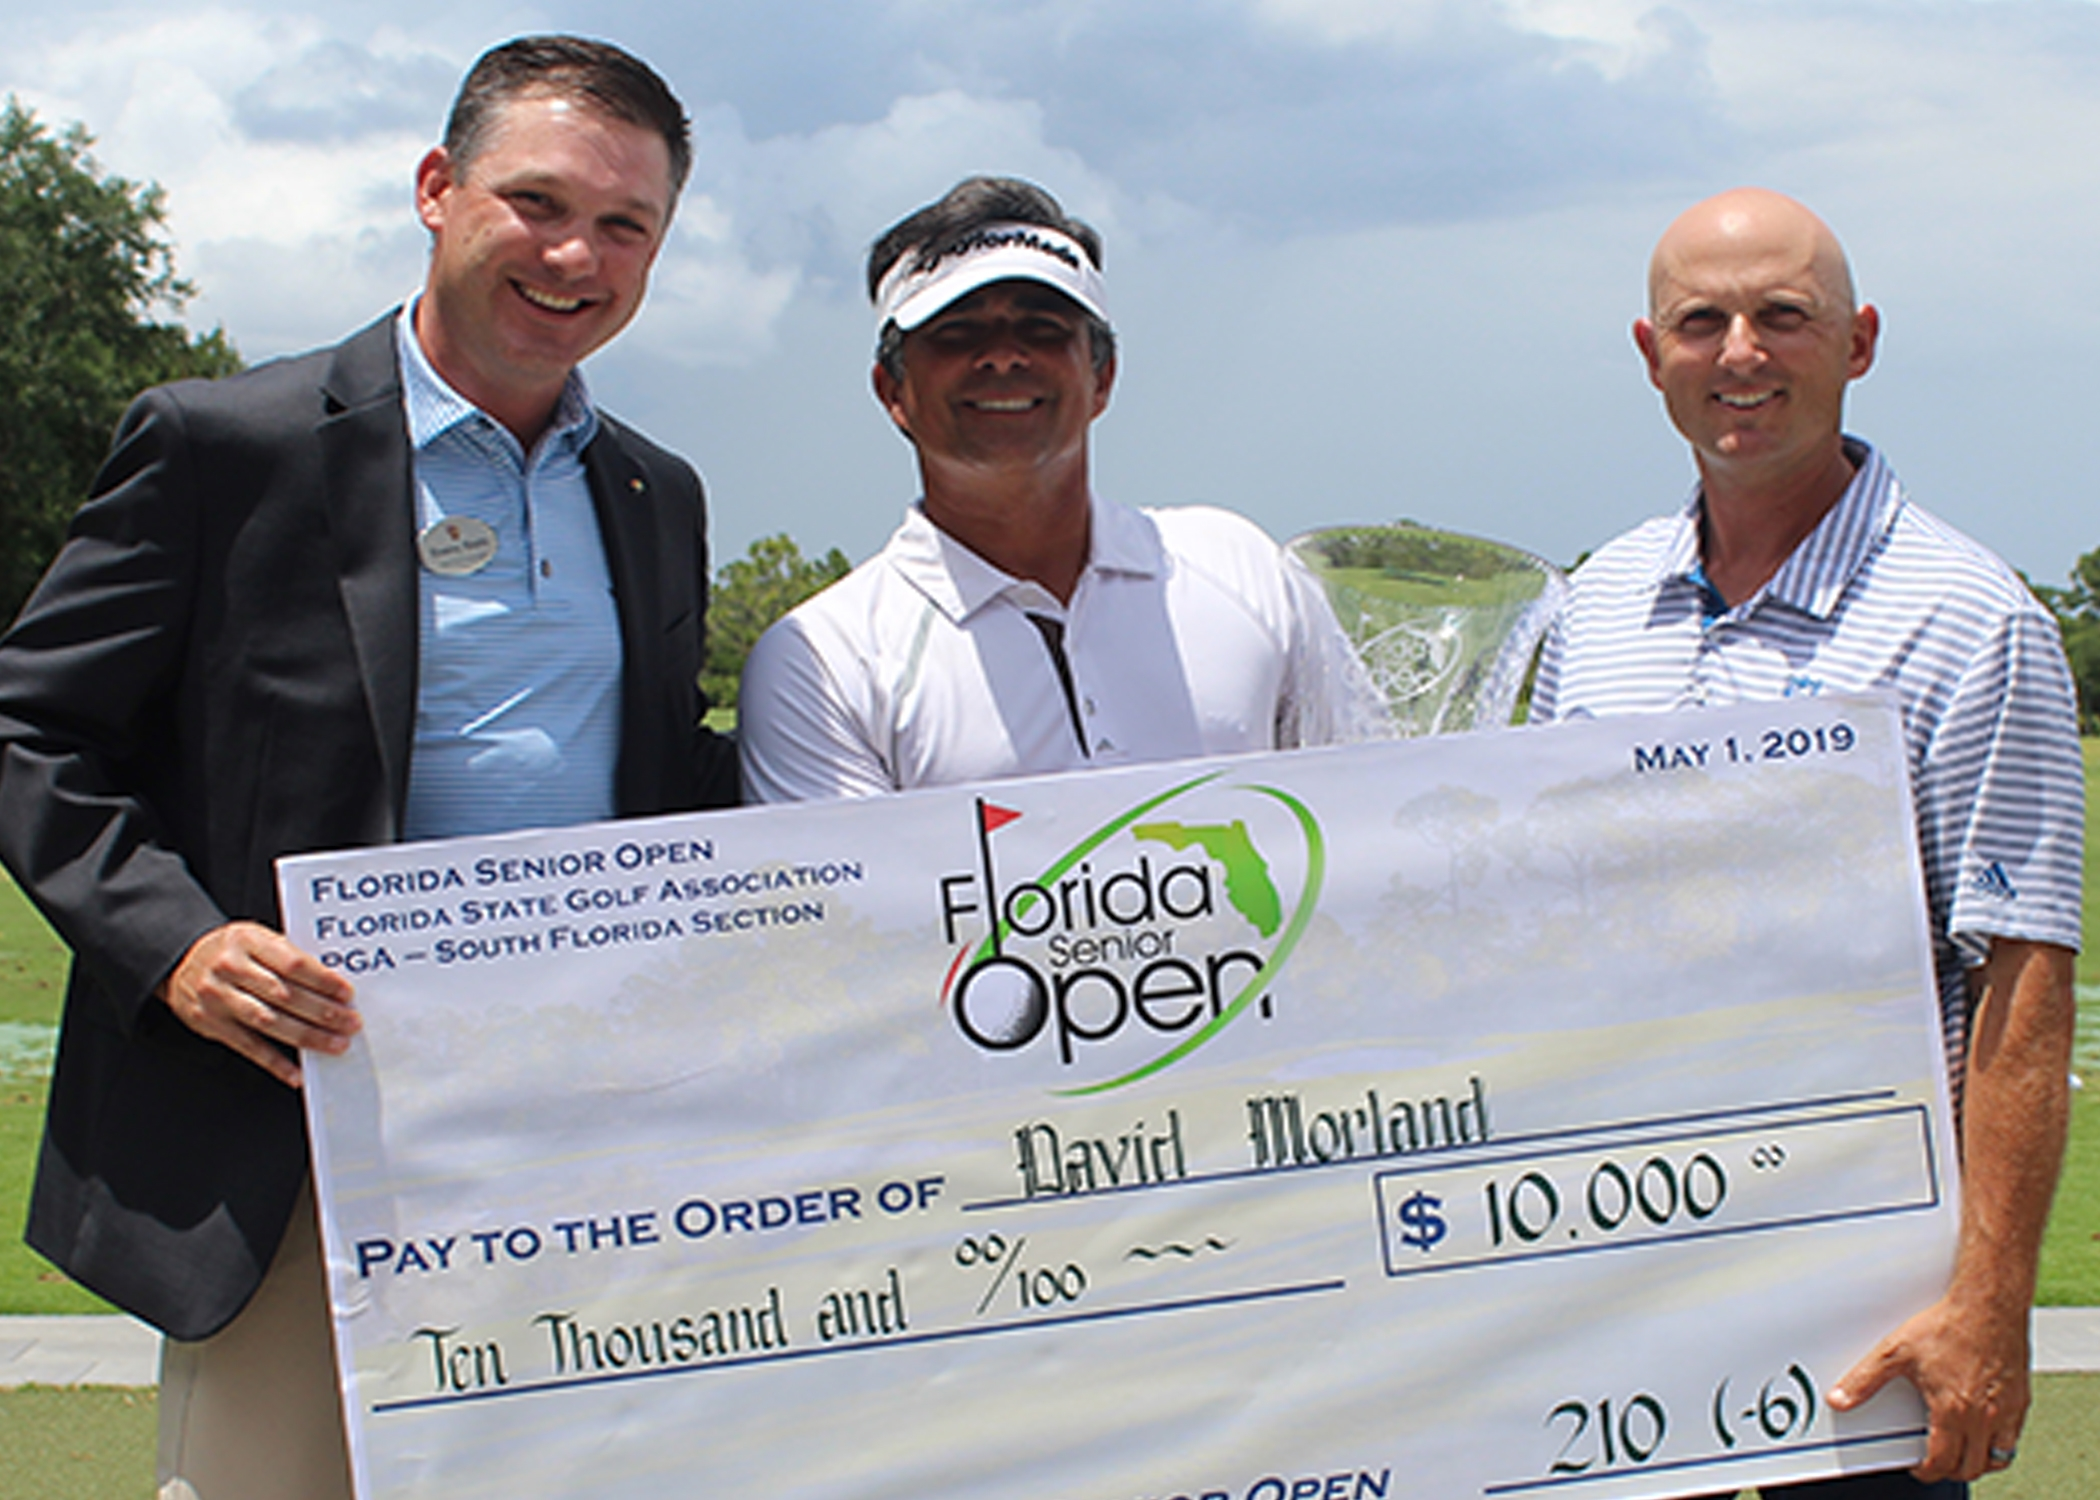 David Morland moved six spots up the leaderboard in the final round to capture the Florida Senior Open